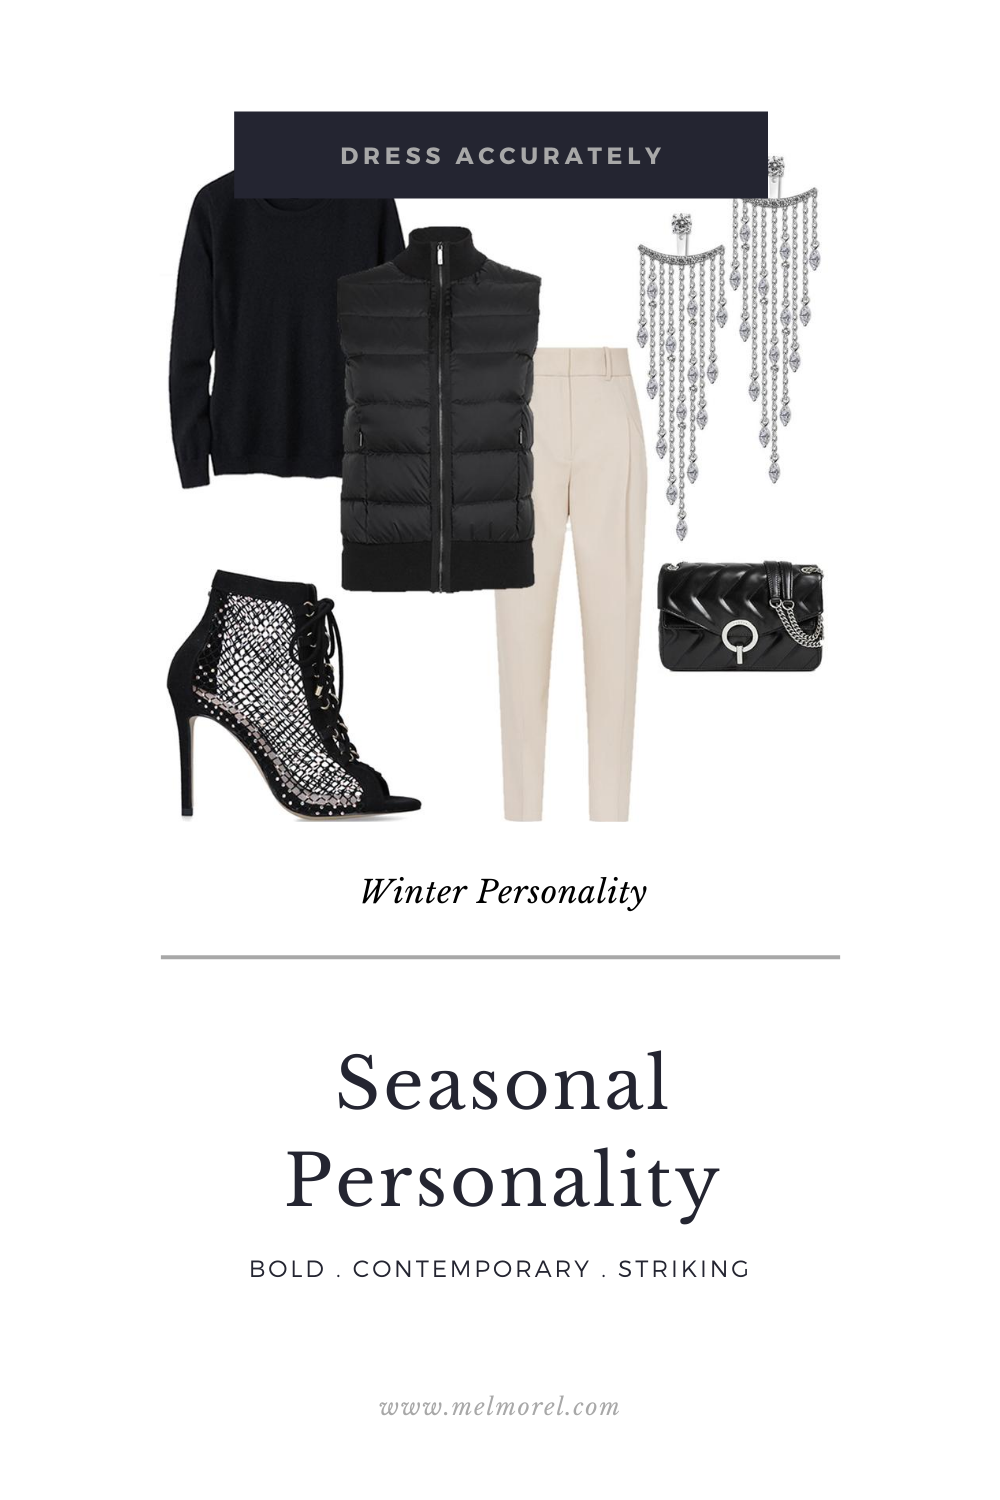 Winter Personality - sleeveless padded front gilet - front pleat trousers - cashmere slit fit crew neck sweater - black embellished lace up boot heels - leather shoulder bag - a-lister ear jacket earrings